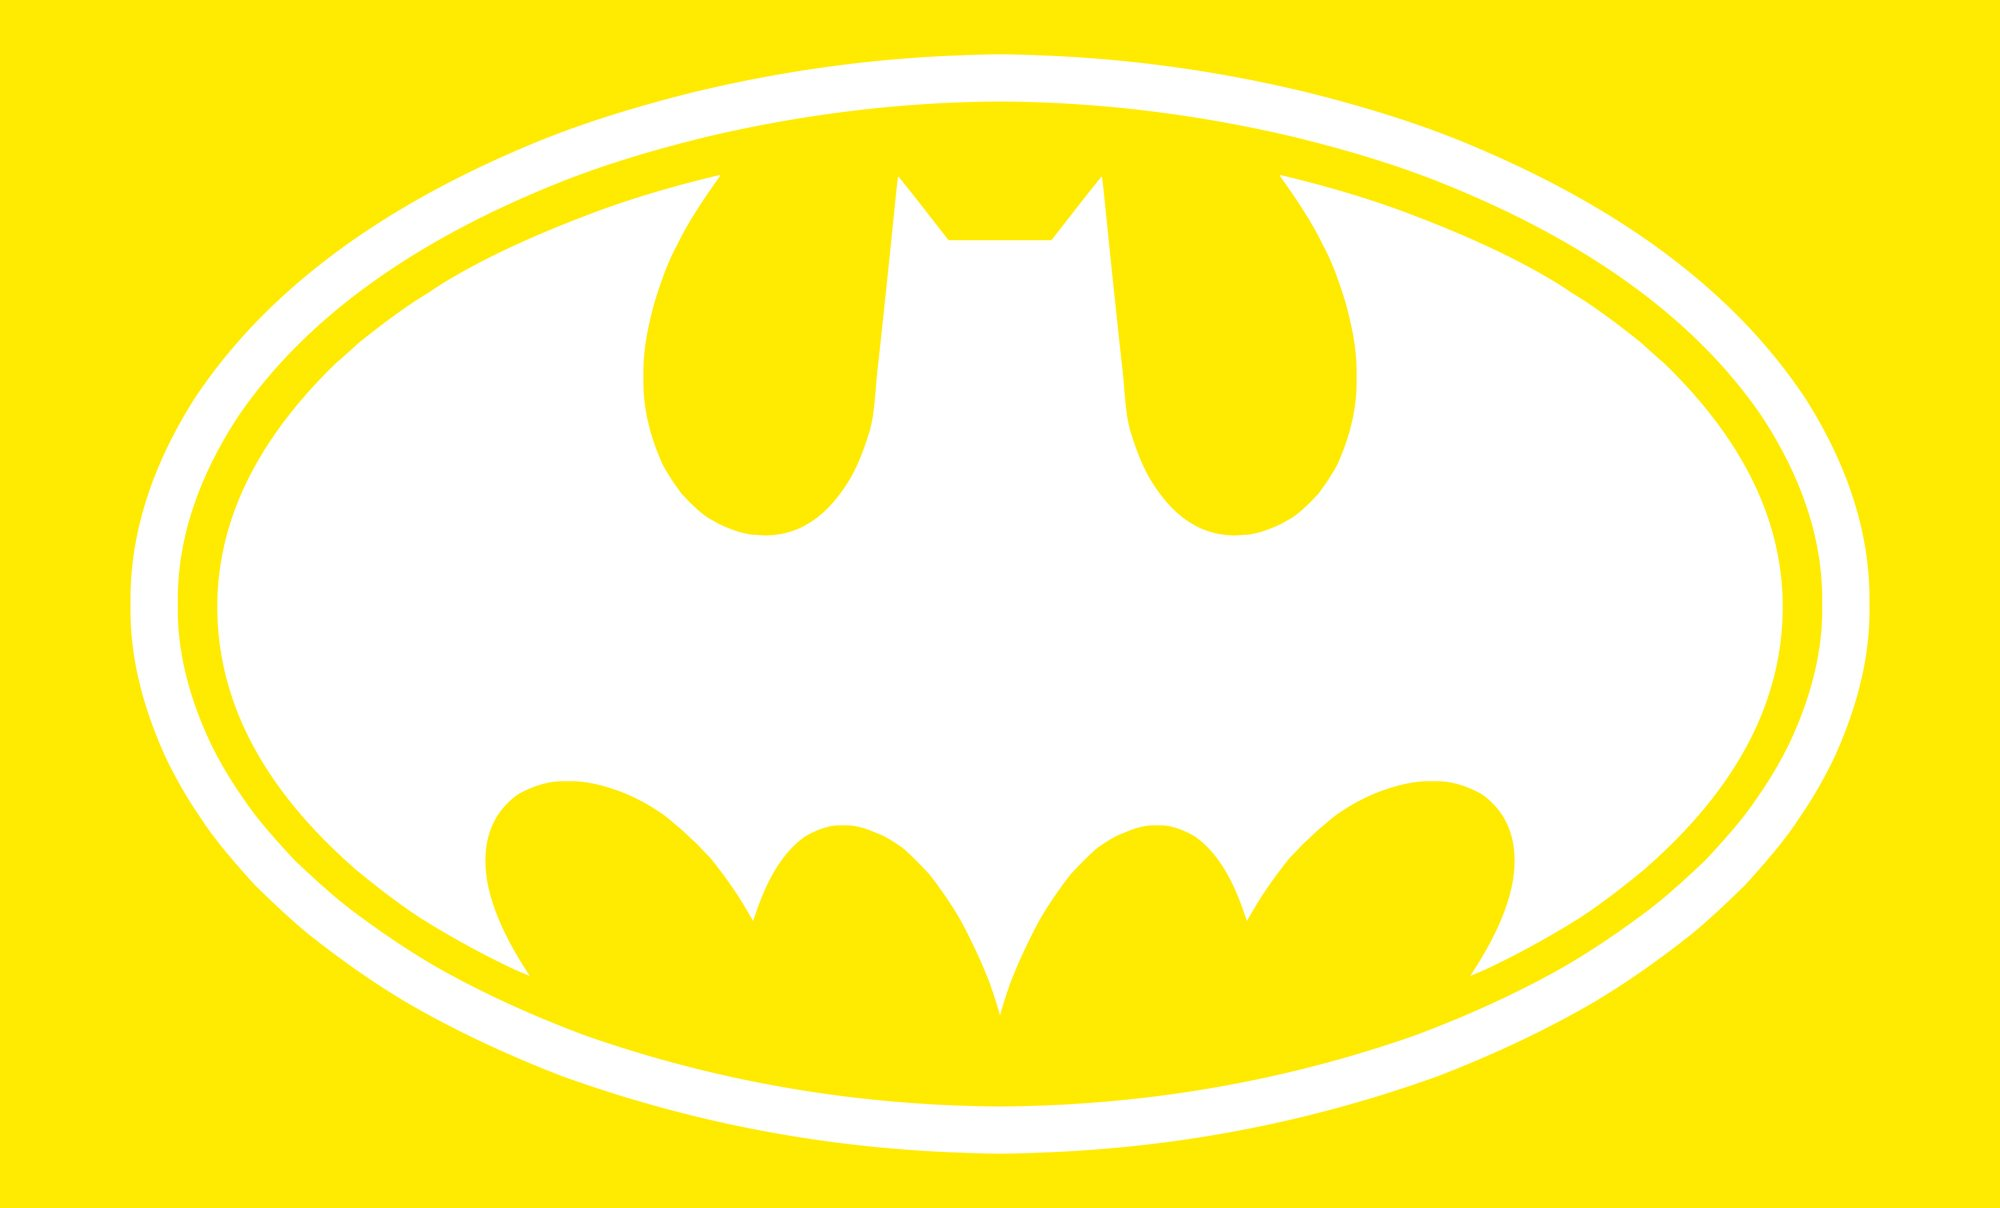 Batman logo batman symbol meaning history and evolution the batman logo is also part of the logo that brands the dawn of justice batman vs superman it symbolizes the two powers joining in a merciless and buycottarizona